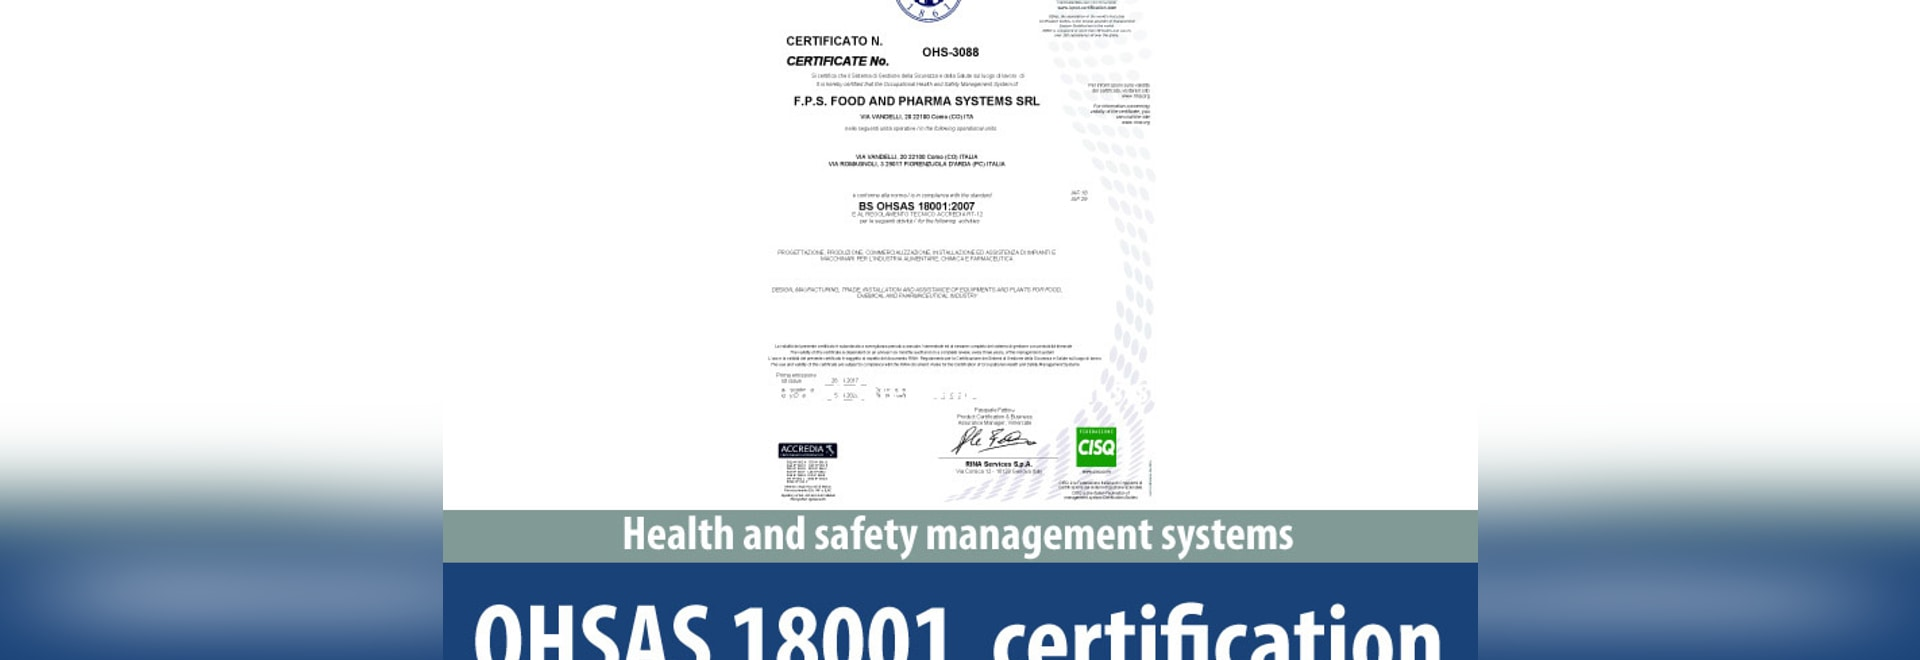 OHSAS Certification